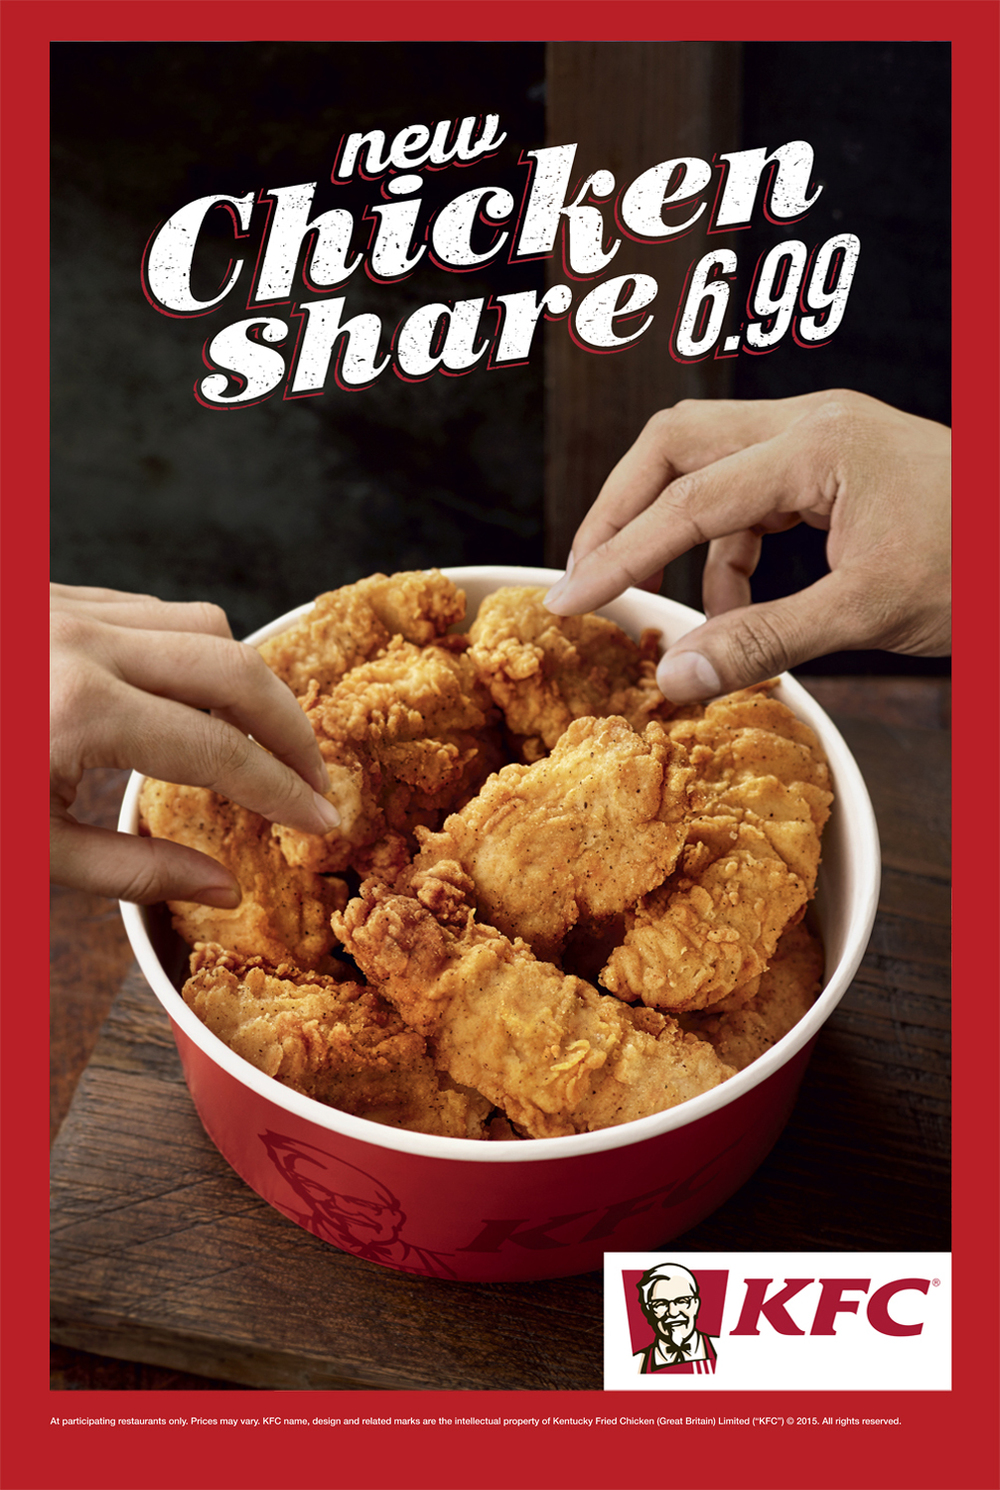 Food and drink photographer and tabletop director Scott Grummett based in London. Shooting Advertising, editorial, packaging, pr and more. Shown here is food photography from food photographer and director Scott Grummett of  Kentucky Fried Chicken or KFC it's southern fried chicken. The colonel. Hands picking mini fillets of a bargain bucket.